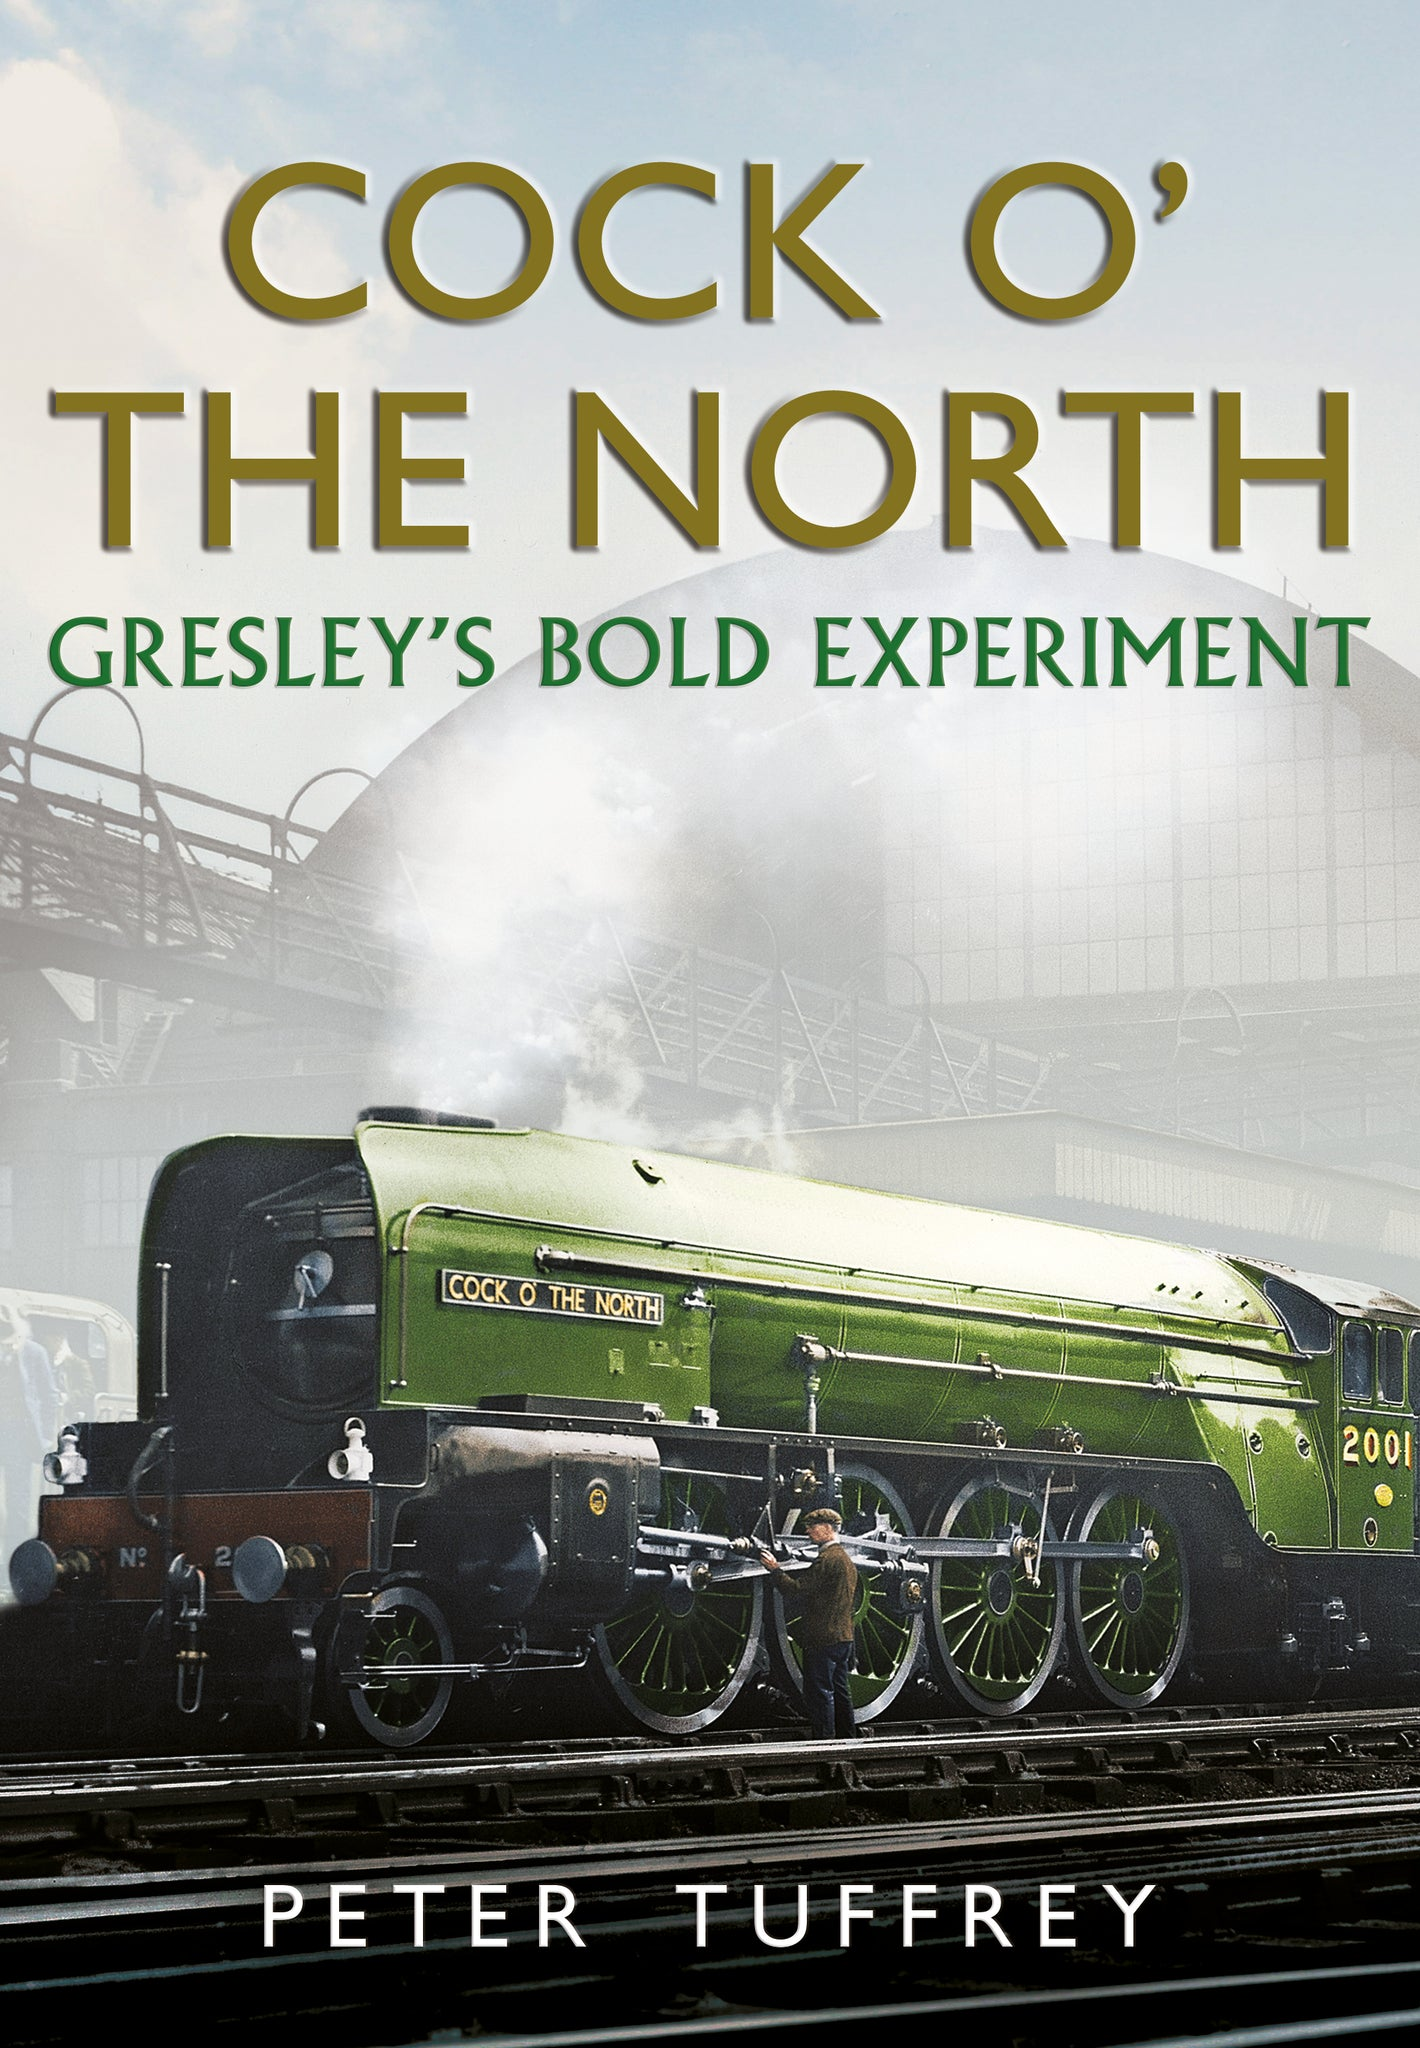 Cock o' the North: Gresley's Bold Experiment - paperback edition available from Fonthill Media